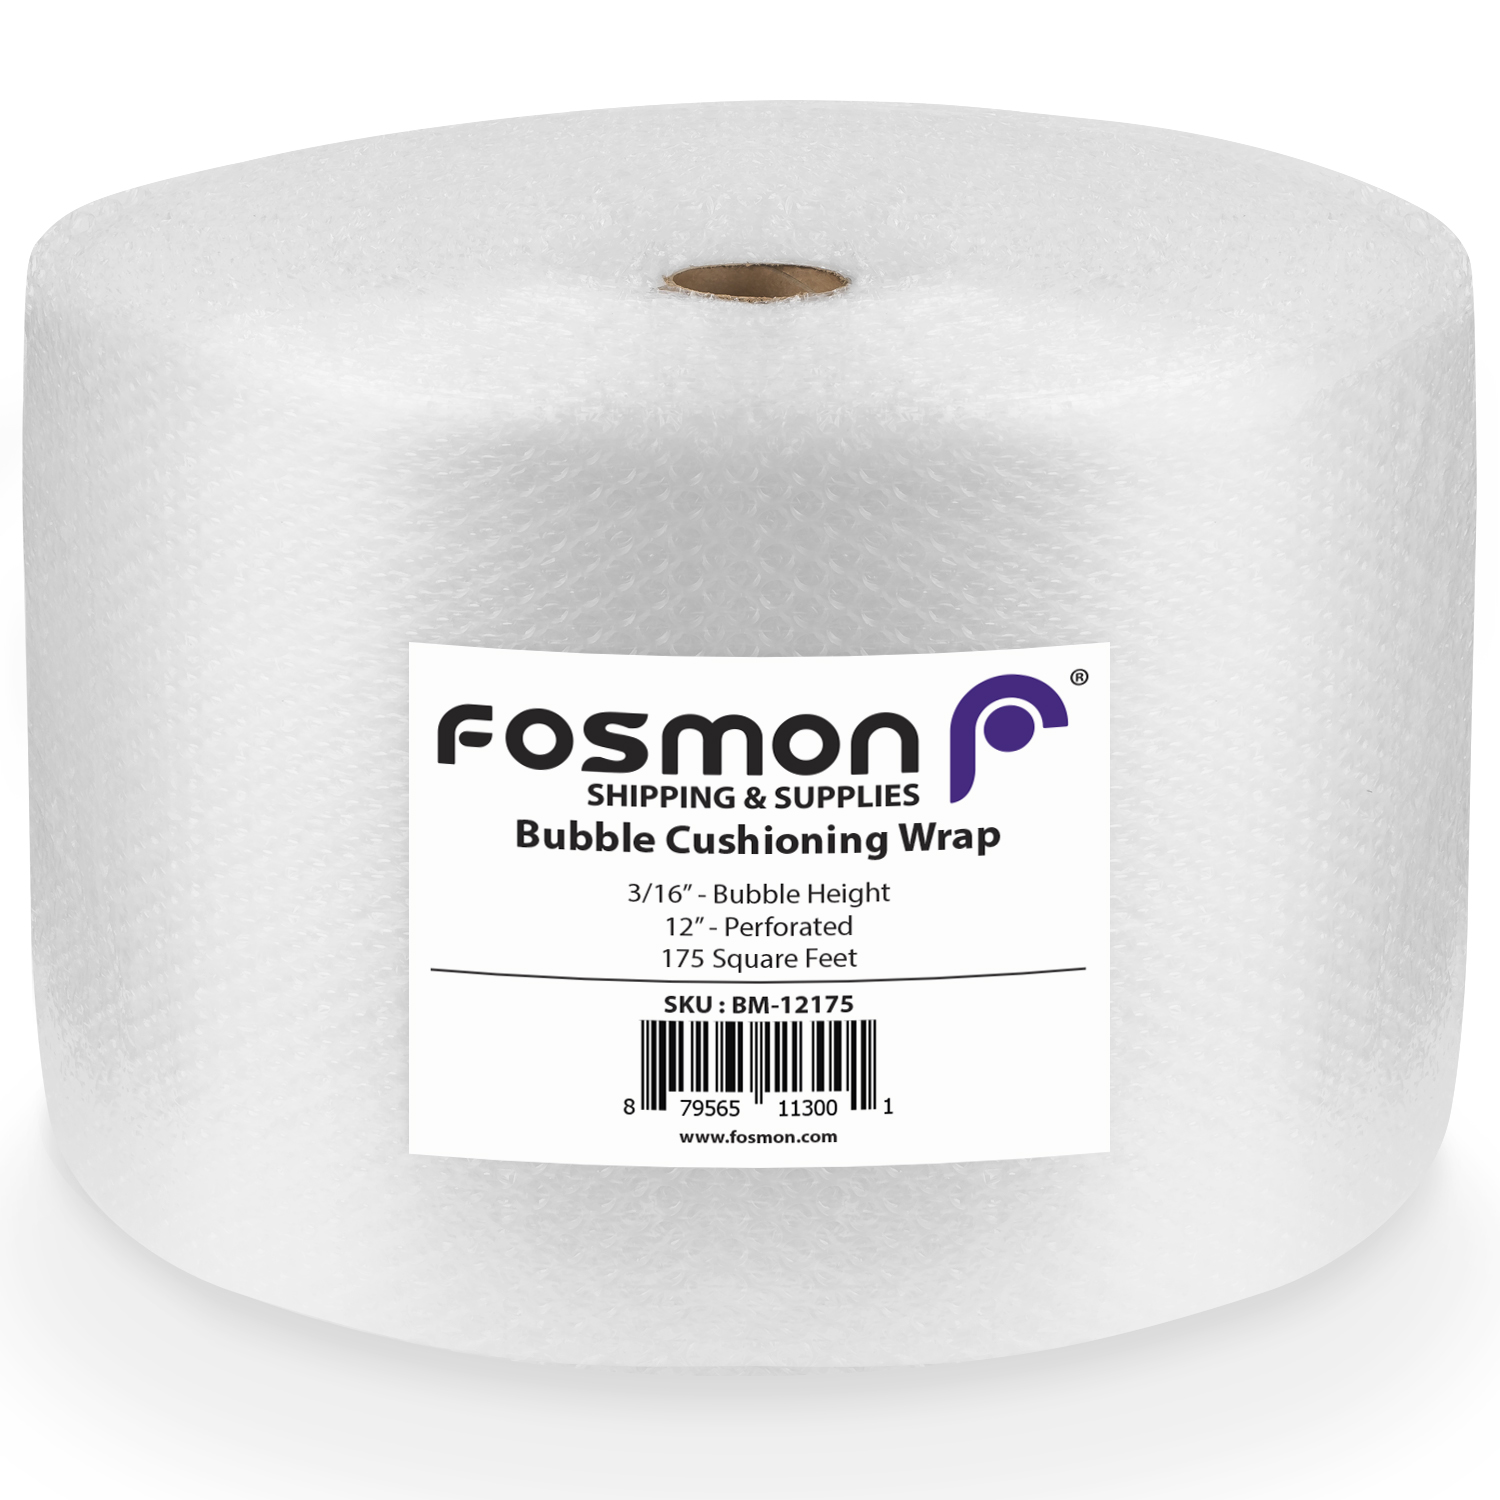 "Fosmon Sealed Air Bubble Cushioning Wrap Roll 12"" x 175' for Packaging, Shipping, Mailing, Moving and More"